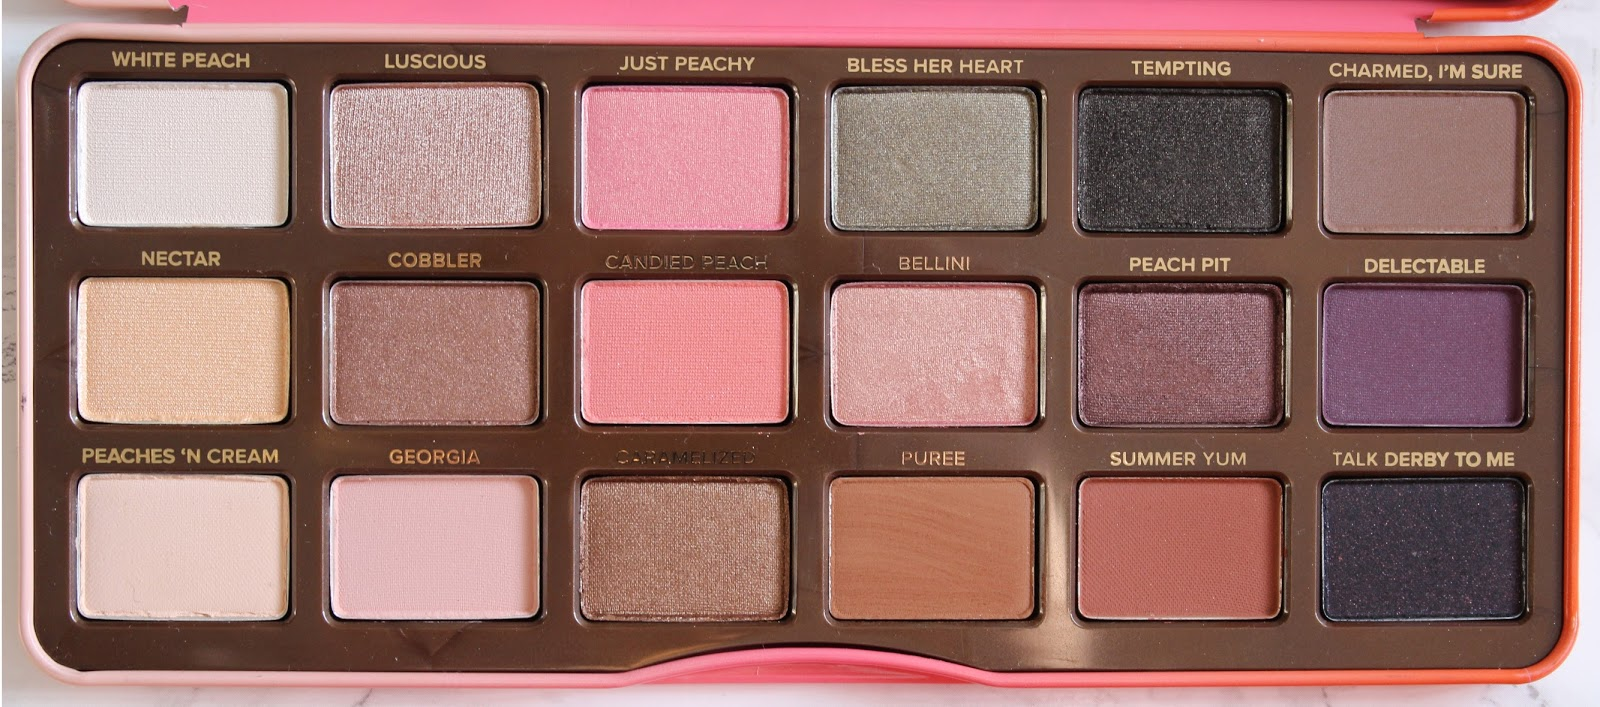 Too Faced's Sweet Peach Eyeshadow Palette